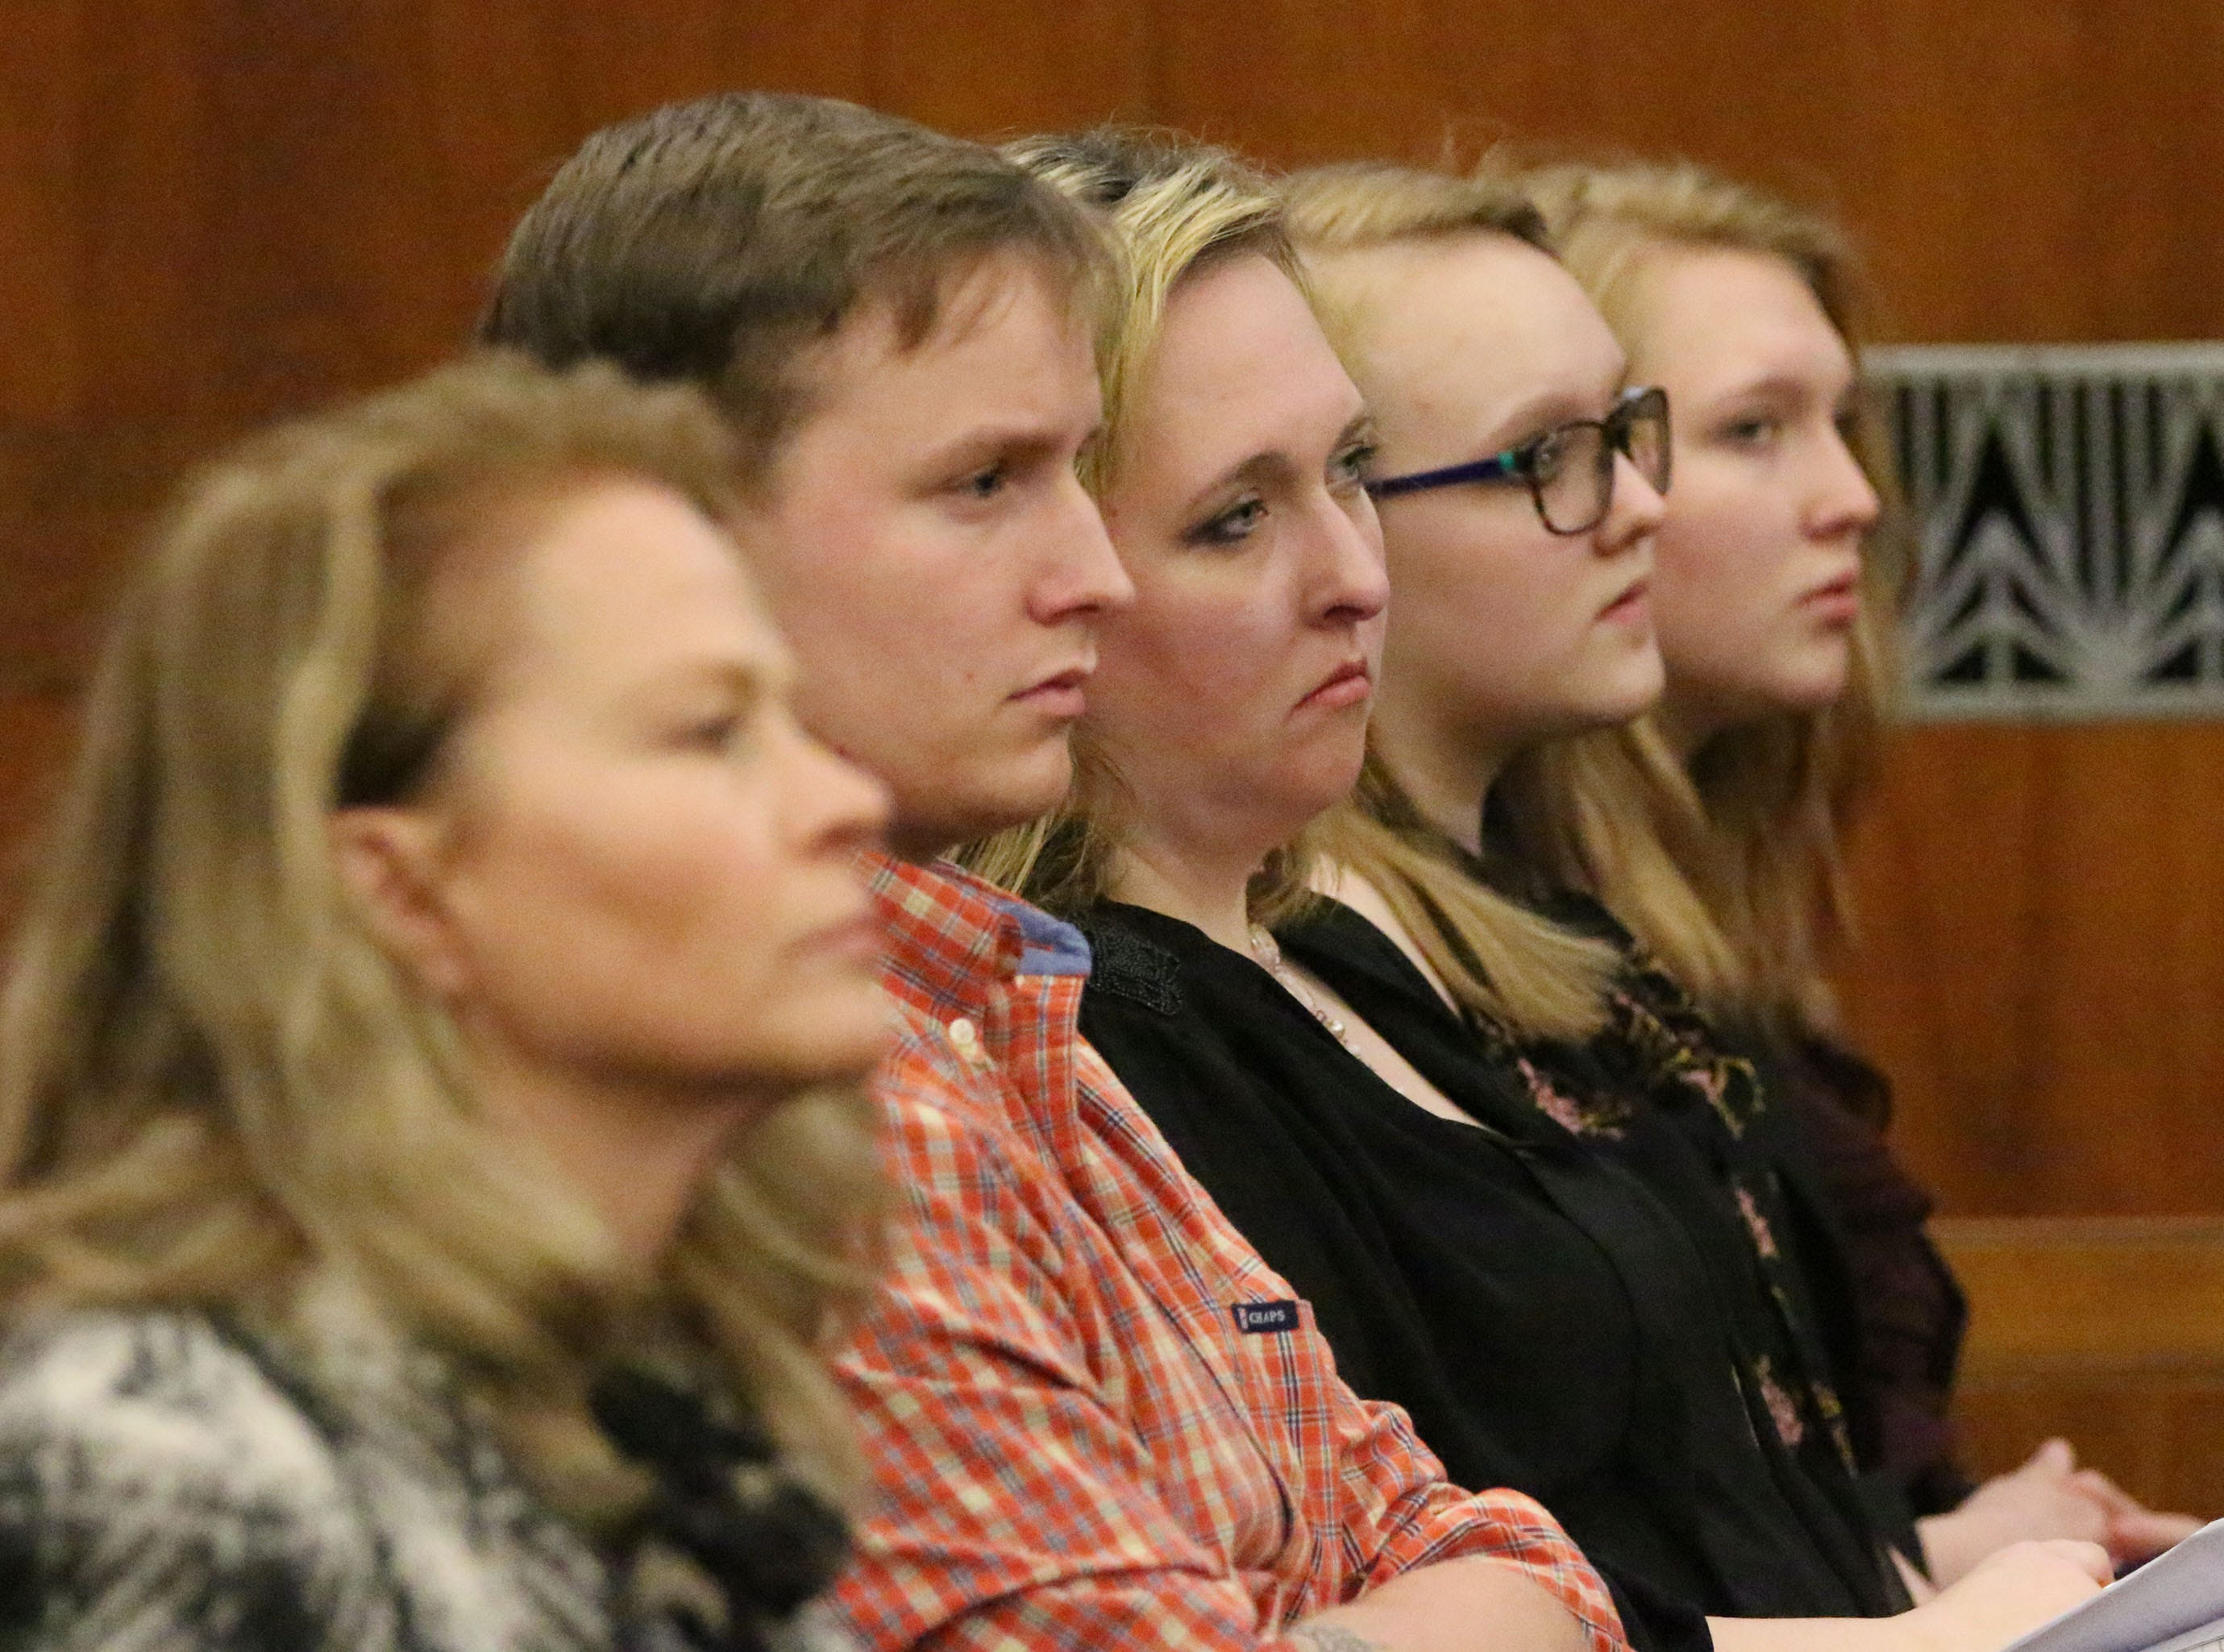 Christy Rose Tuchel, second from left, sits in Sheboygan County Circuit Court Branch 1, Tuesday, October 16, 2018, in Sheboygan, Wis. Tuchel, who was earlier convicted in the Kinship Companions kennel case, sat in court to hear the sentence being imposed on her daughter Breanna Mikula in the kennel case.